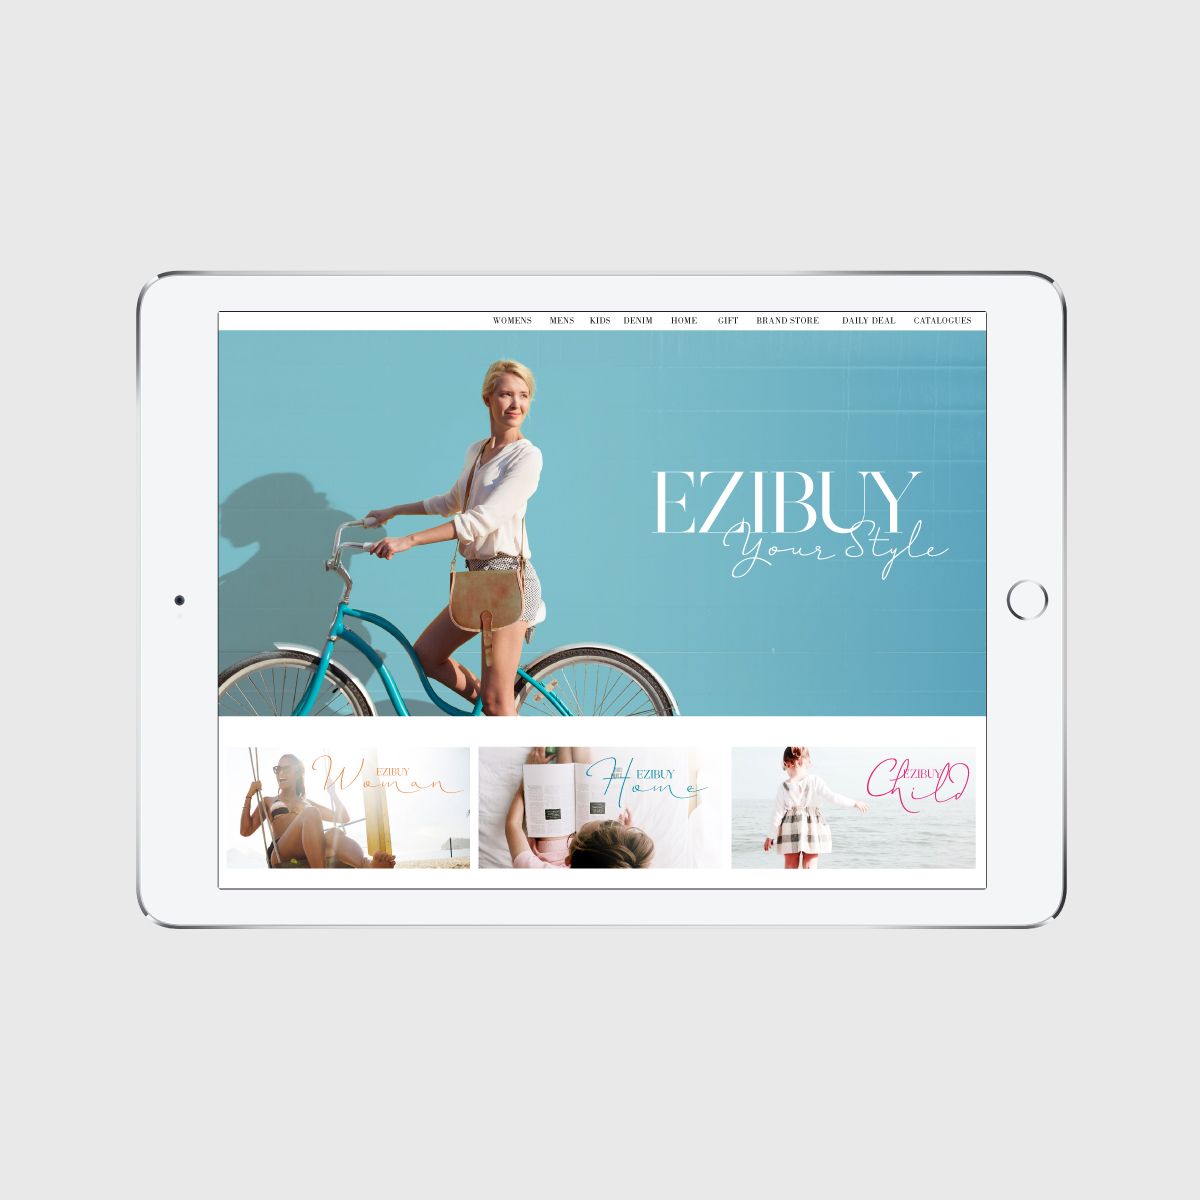 Ezibuy Brand Identity Mobile Website Home Page